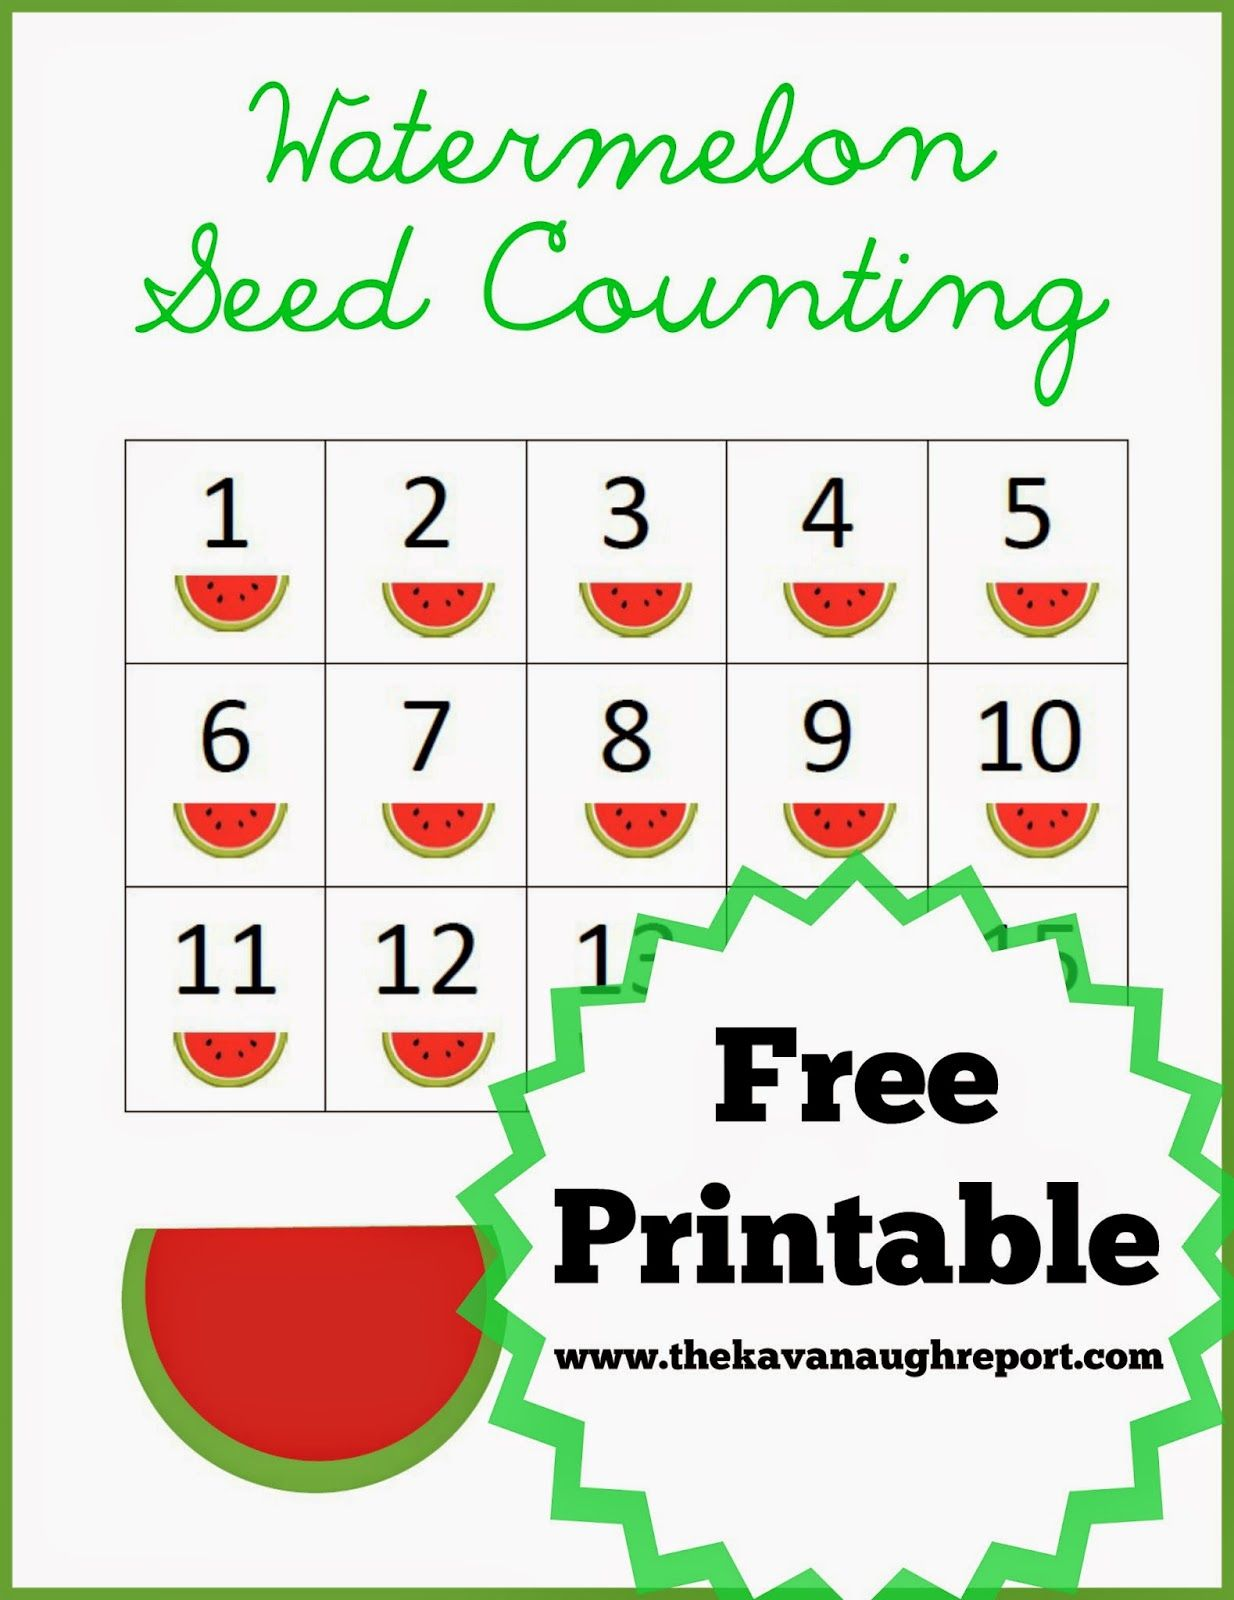 Watermelon Seed Counting Free Printable from The Kavanaugh